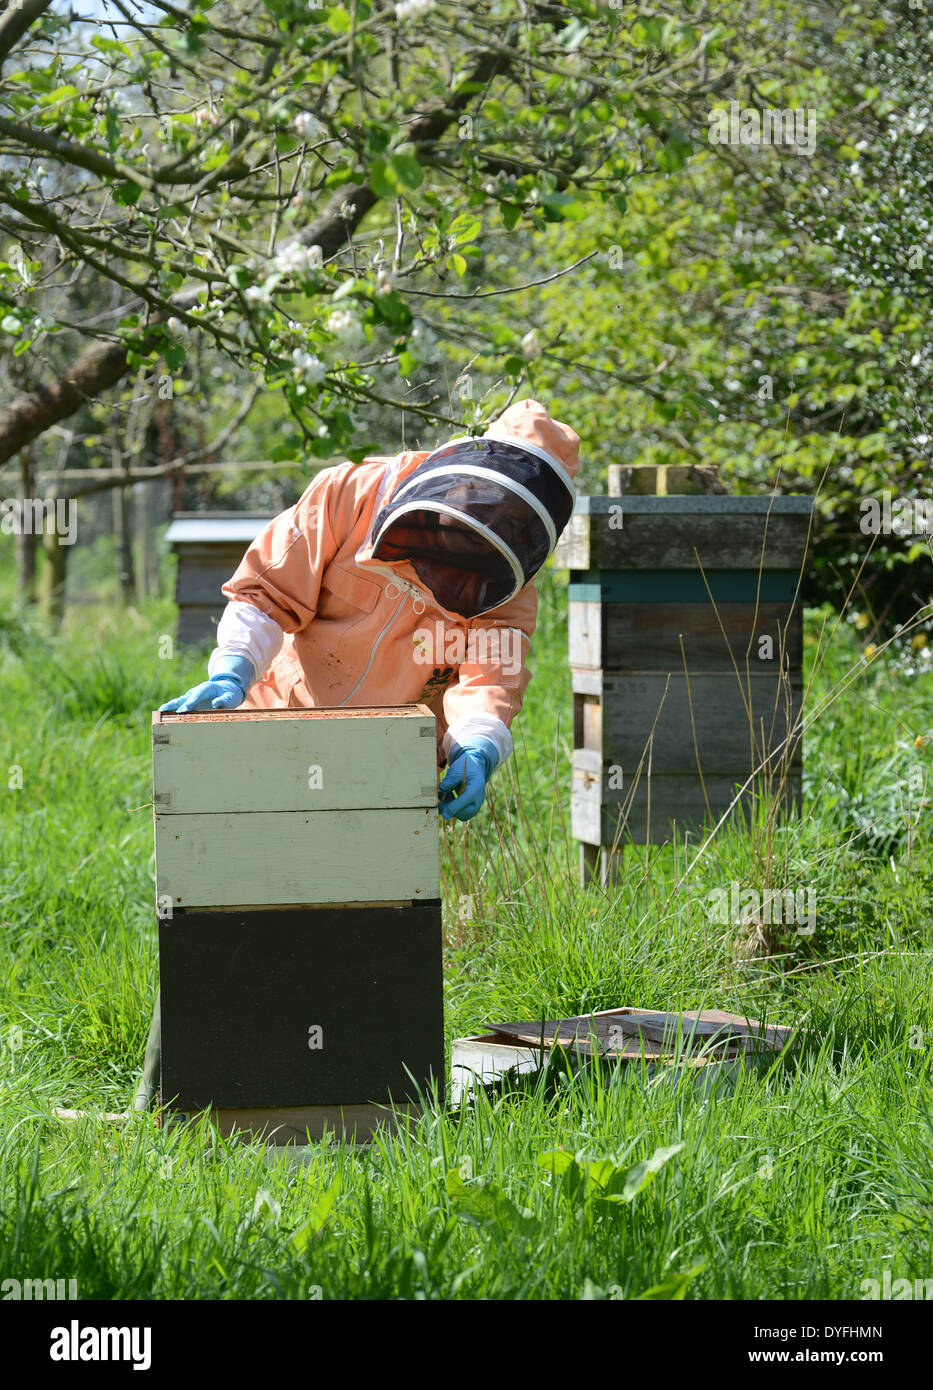 National Trust Bee keeper keeping honey bees hive Uk - Stock Image